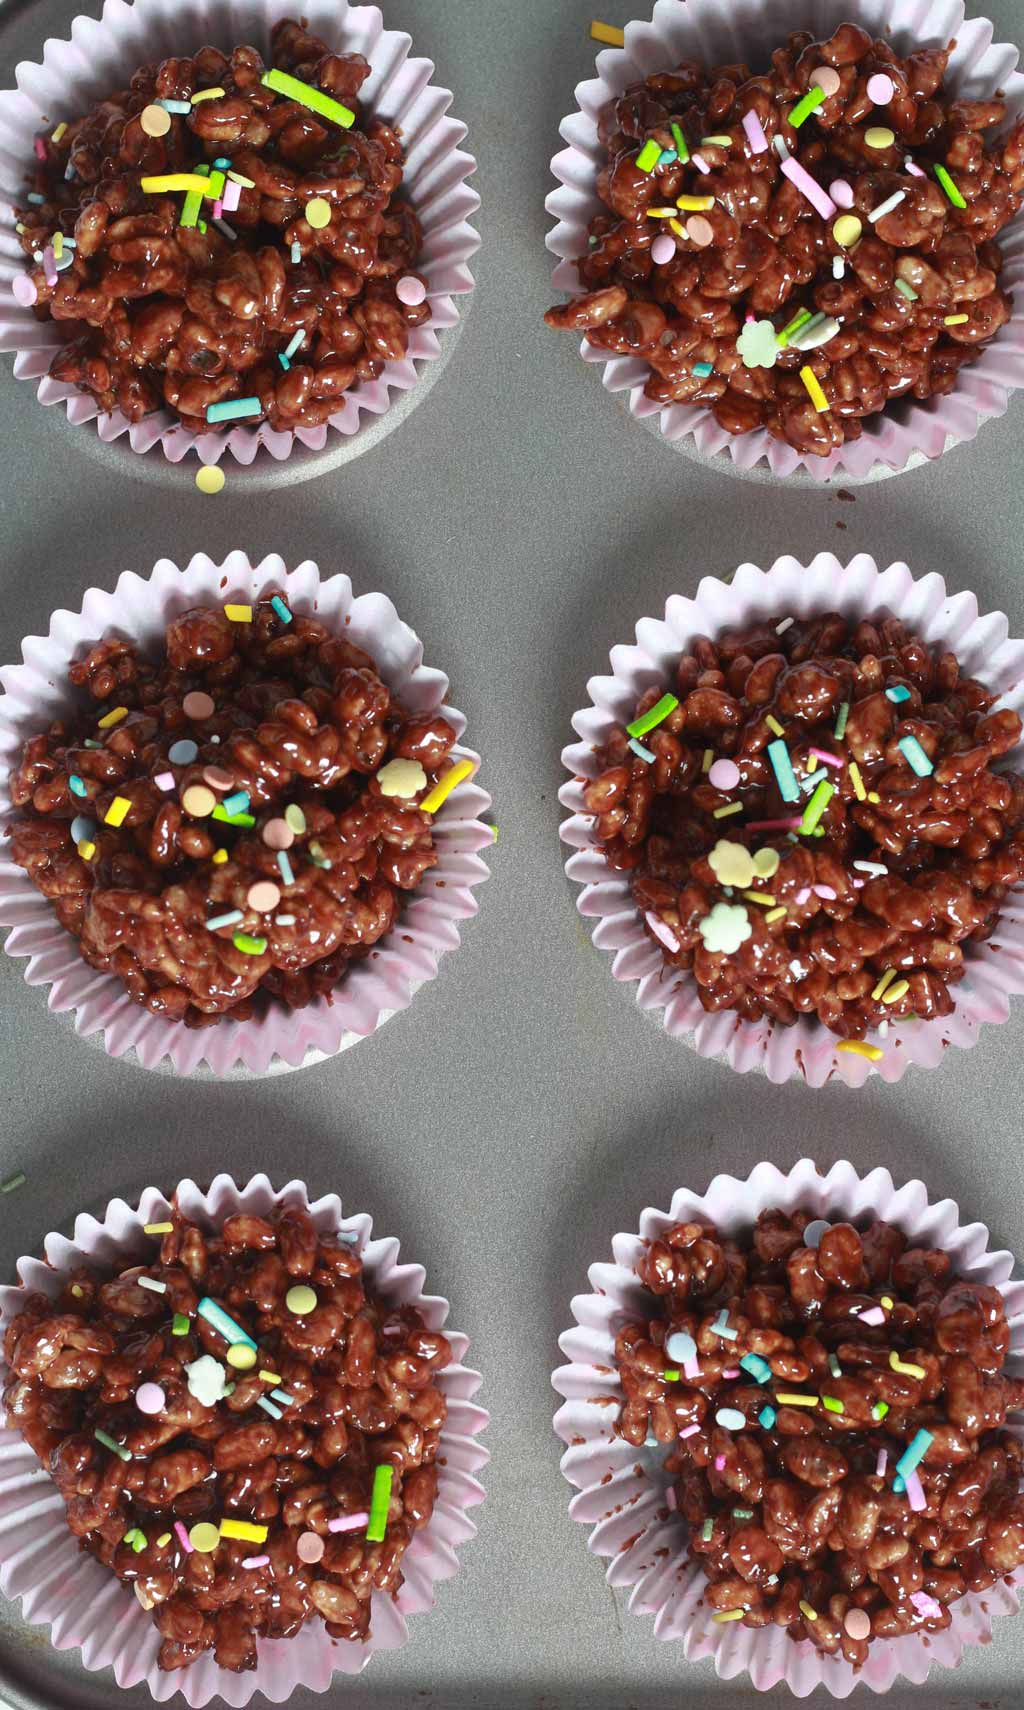 Wet Chocolate Crispy Cakes with sprinkles on top In Cupcake Tin